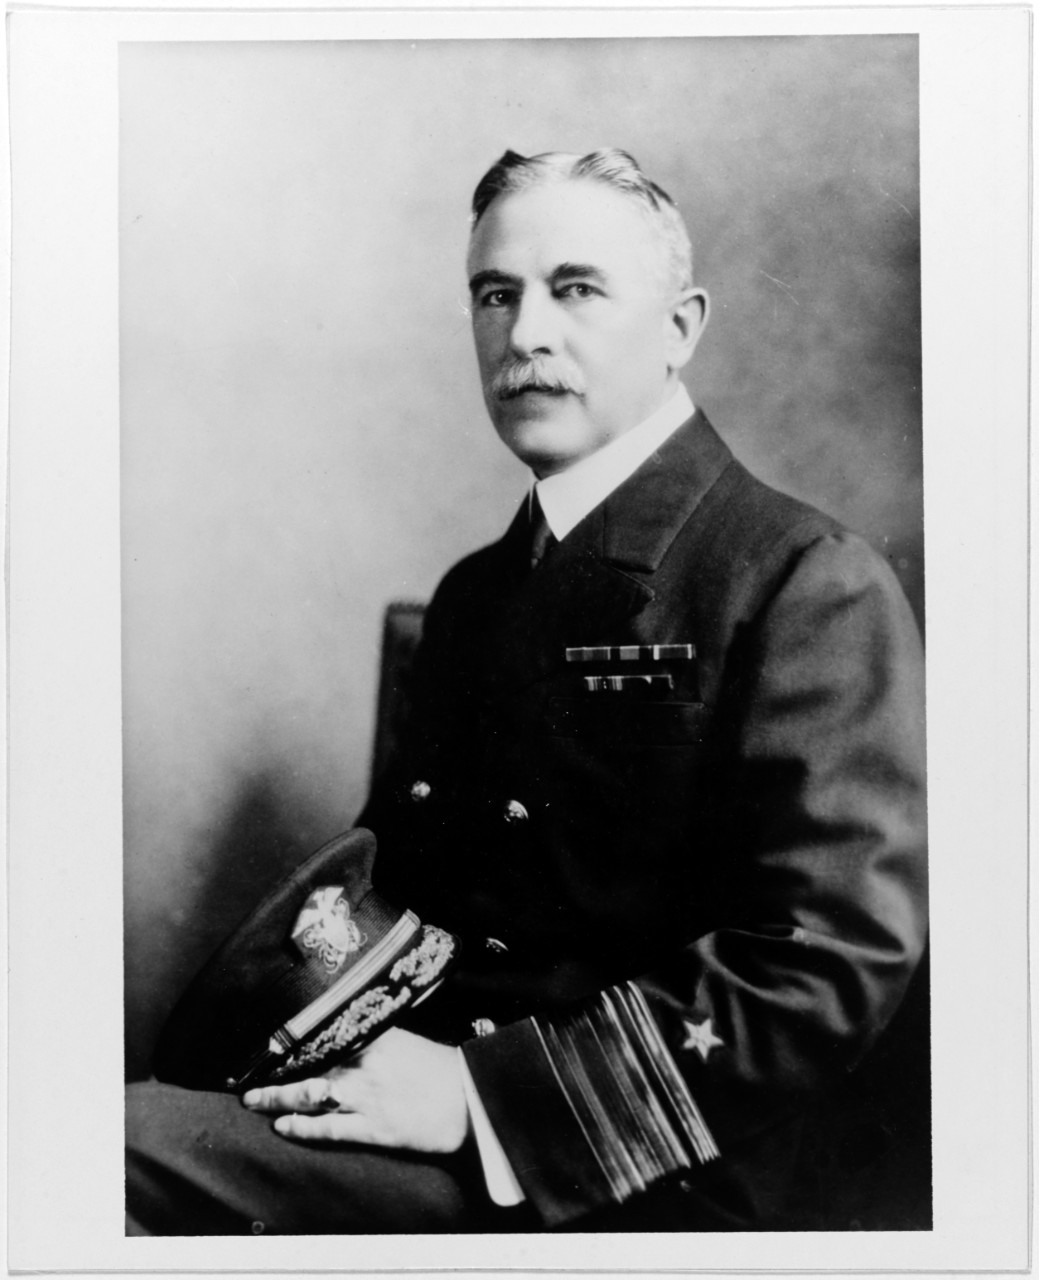 Rear Admiral Henry H. Hough, USN